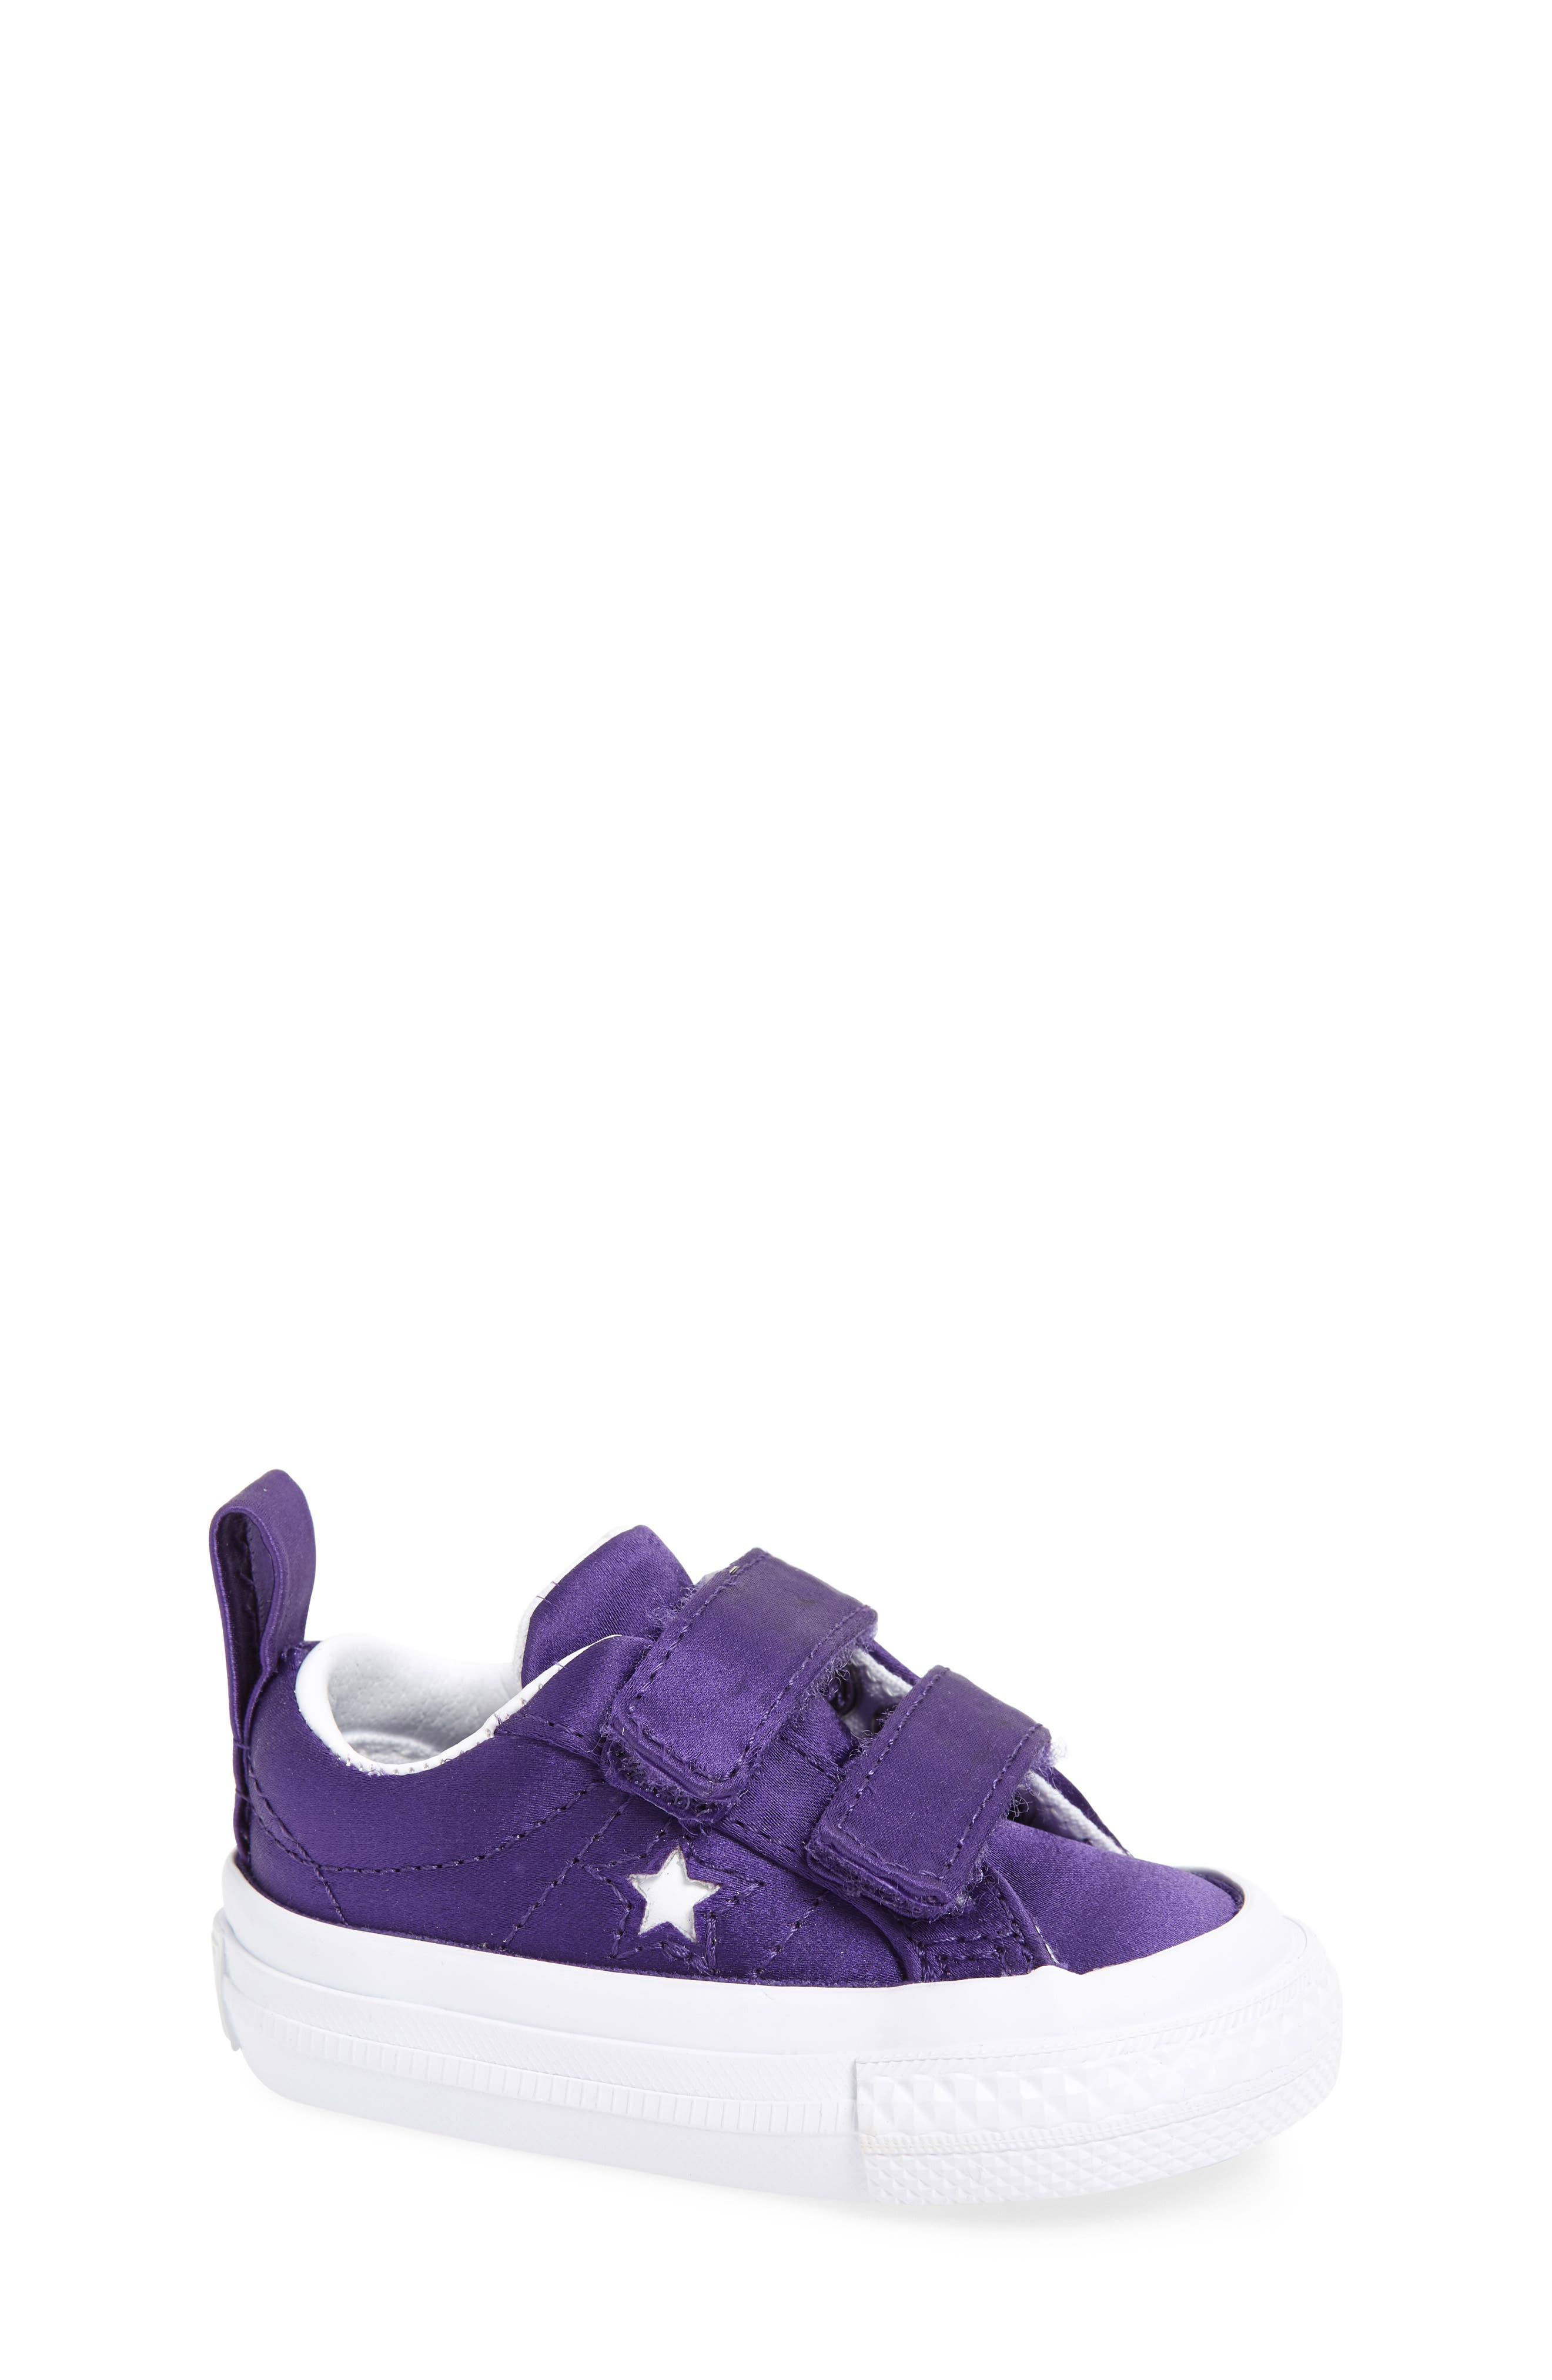 One Star Satin 2V Low Top Sneaker,                         Main,                         color, Court Purple